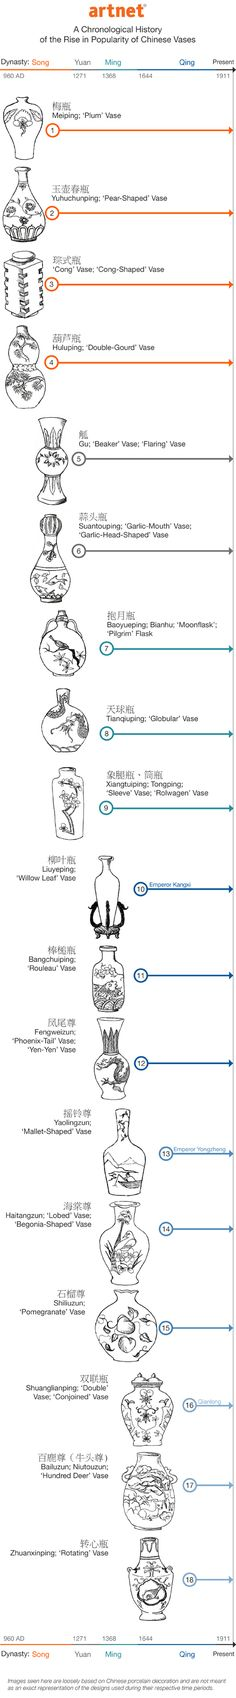 Chinese Vase infographic | A Beginner's Guide to Chinese Porcelain Vase Shapes Helen Bu, Tuesday, July 15, 2014